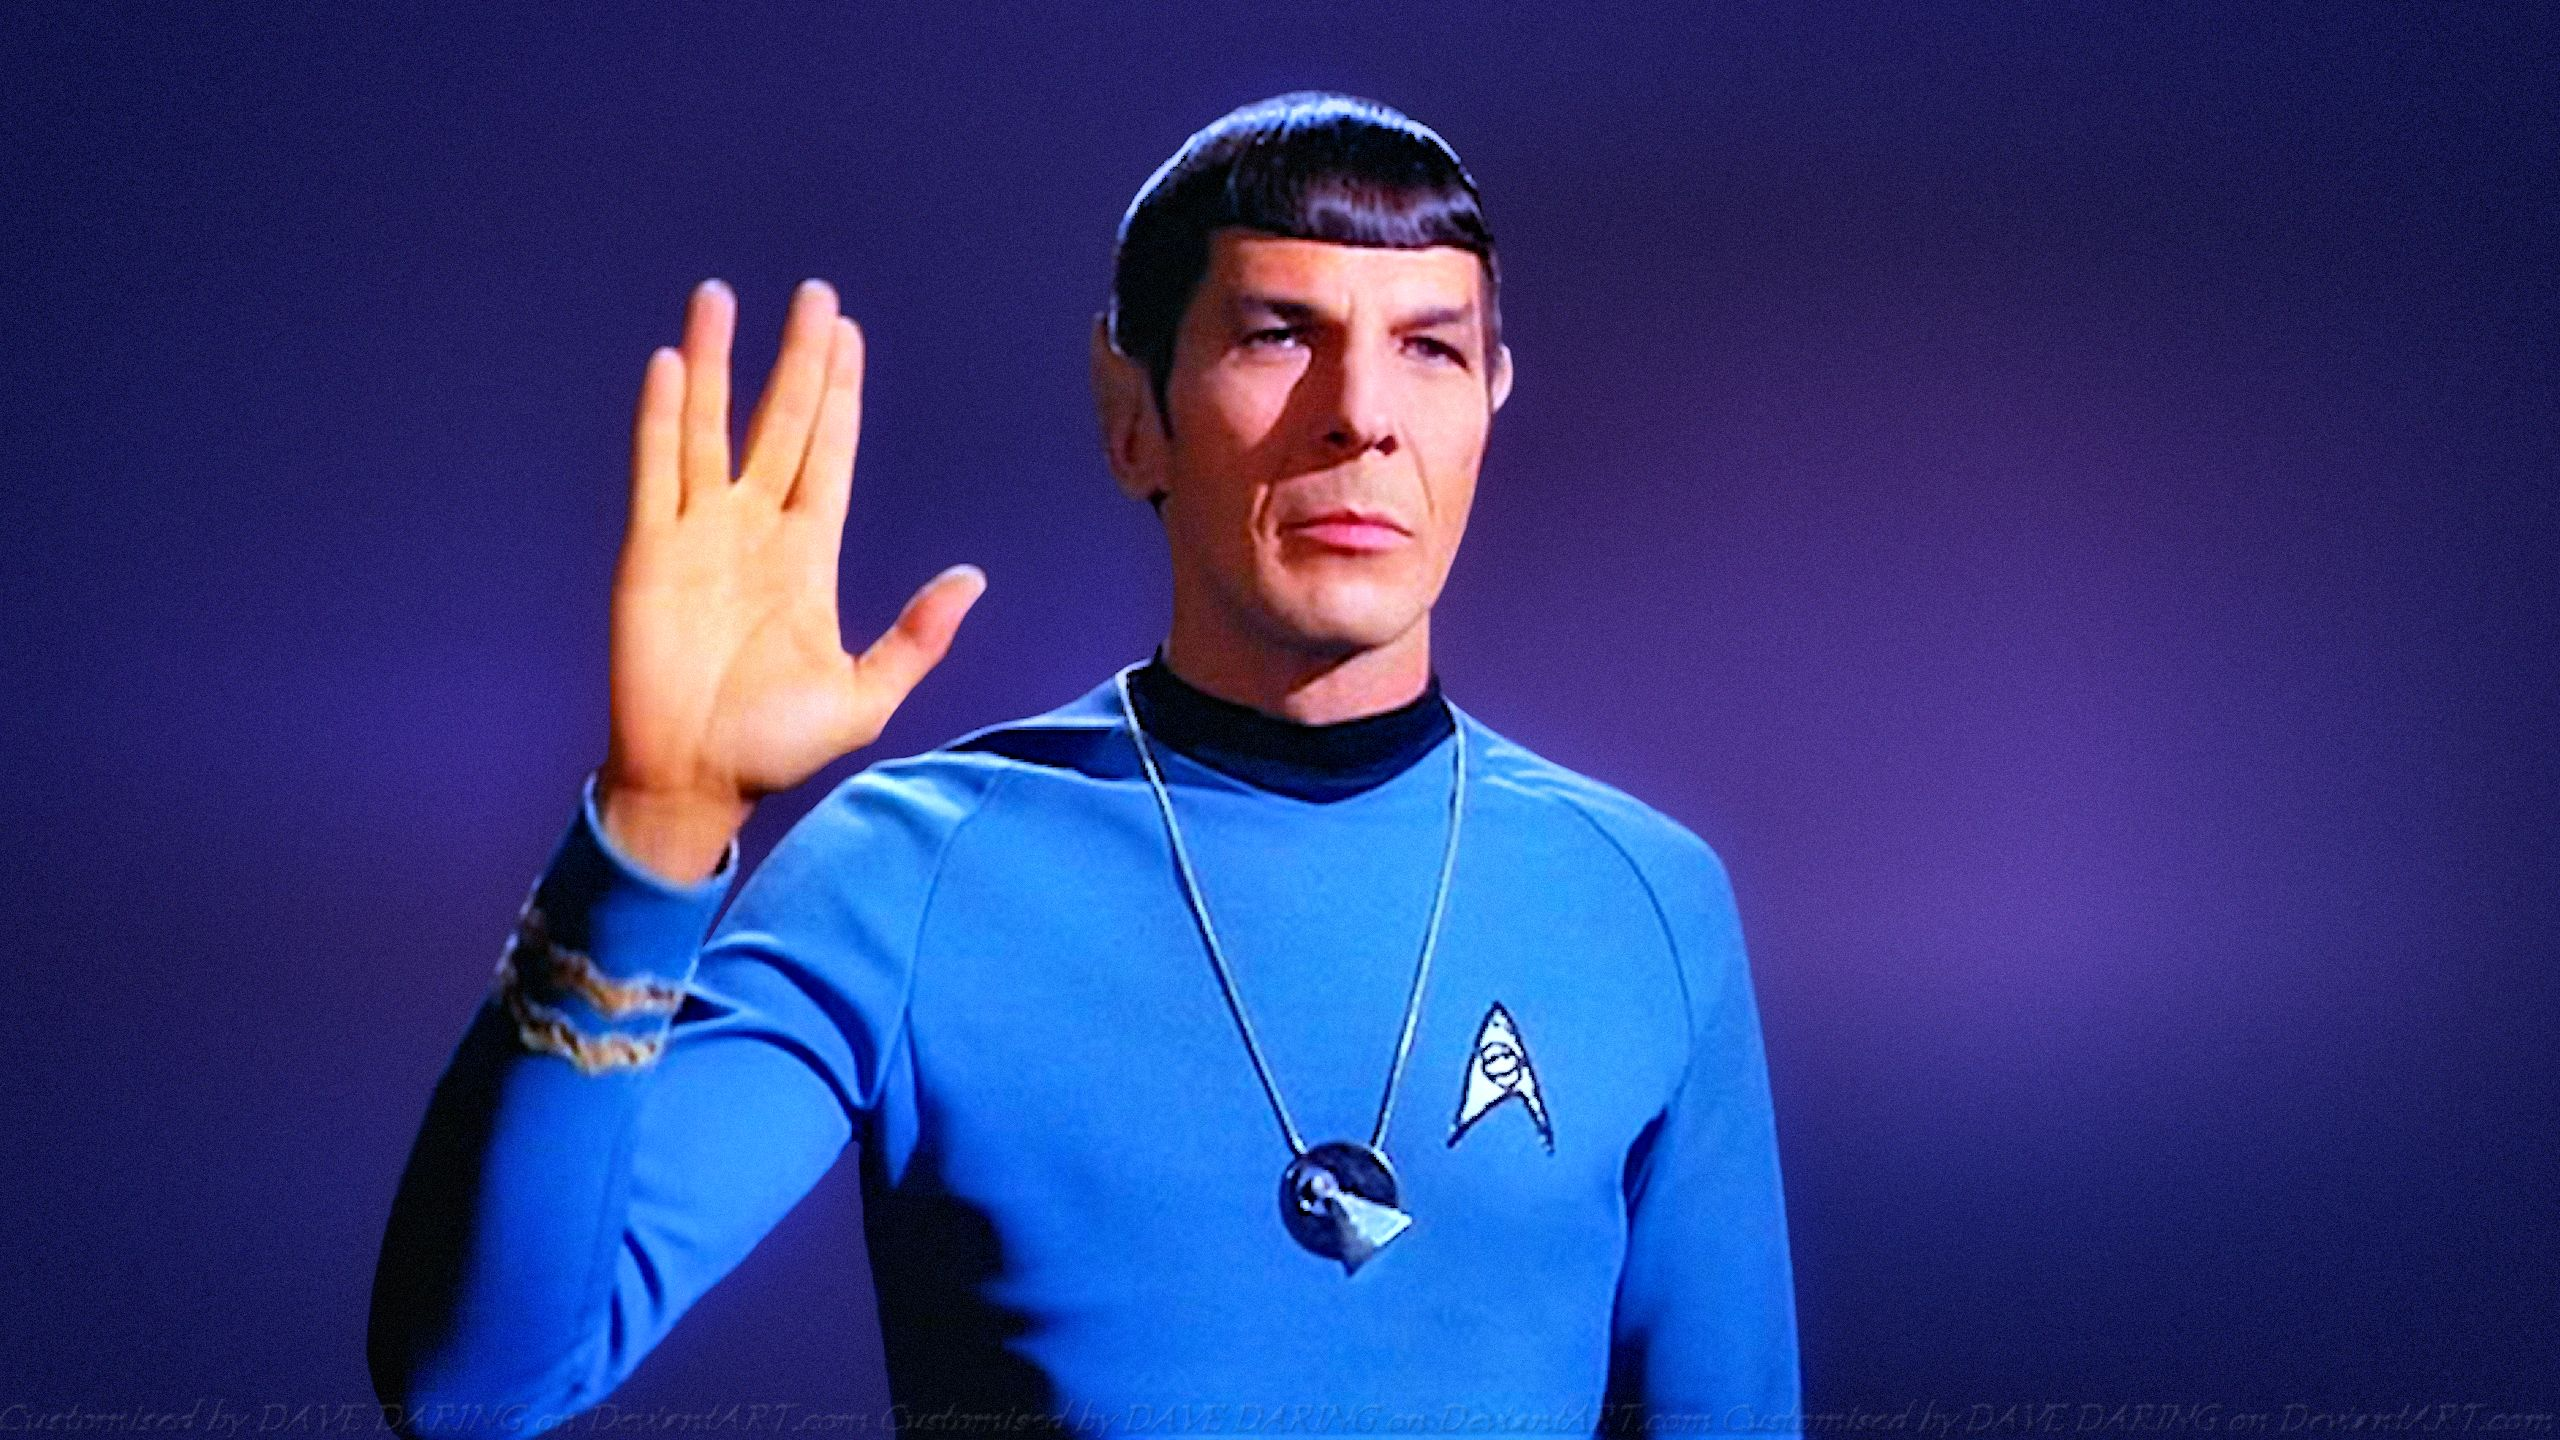 Star Trek: Boston istituisce il Leonard Nimoy Day, in onore del suo cittadino che interpretò Mr. Spock